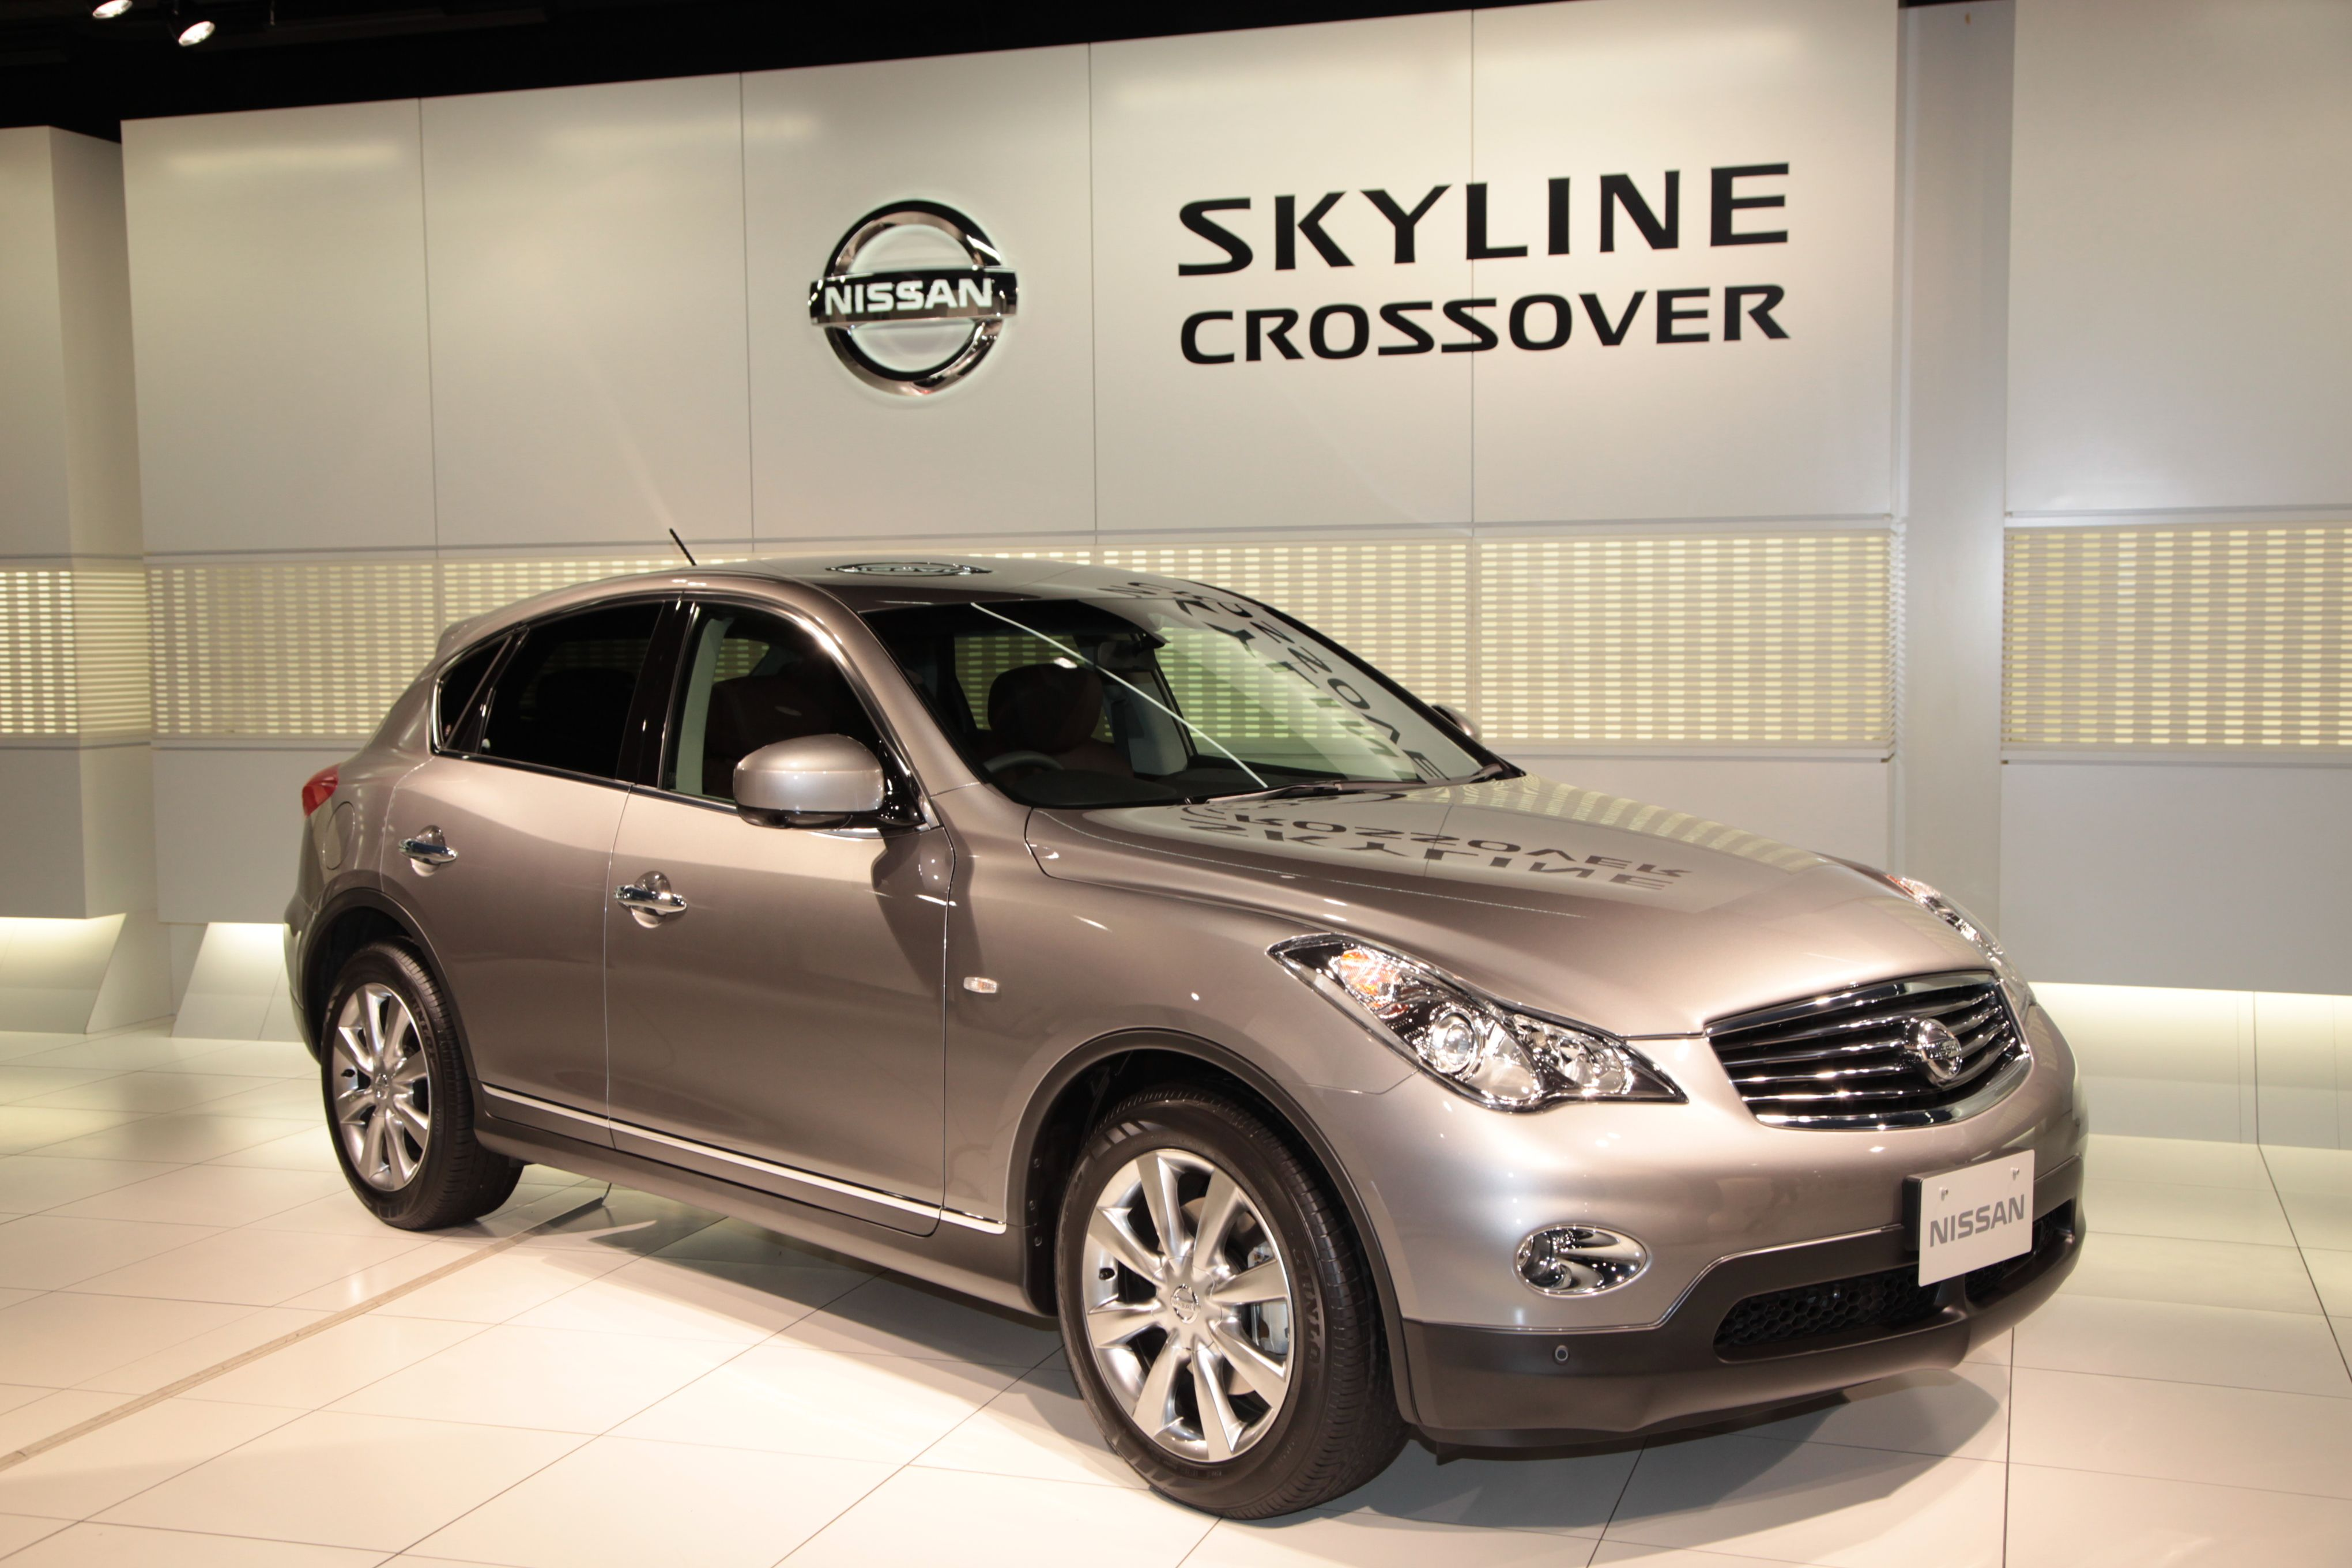 Infiniti FH 37: Japanese high-end crossover 26